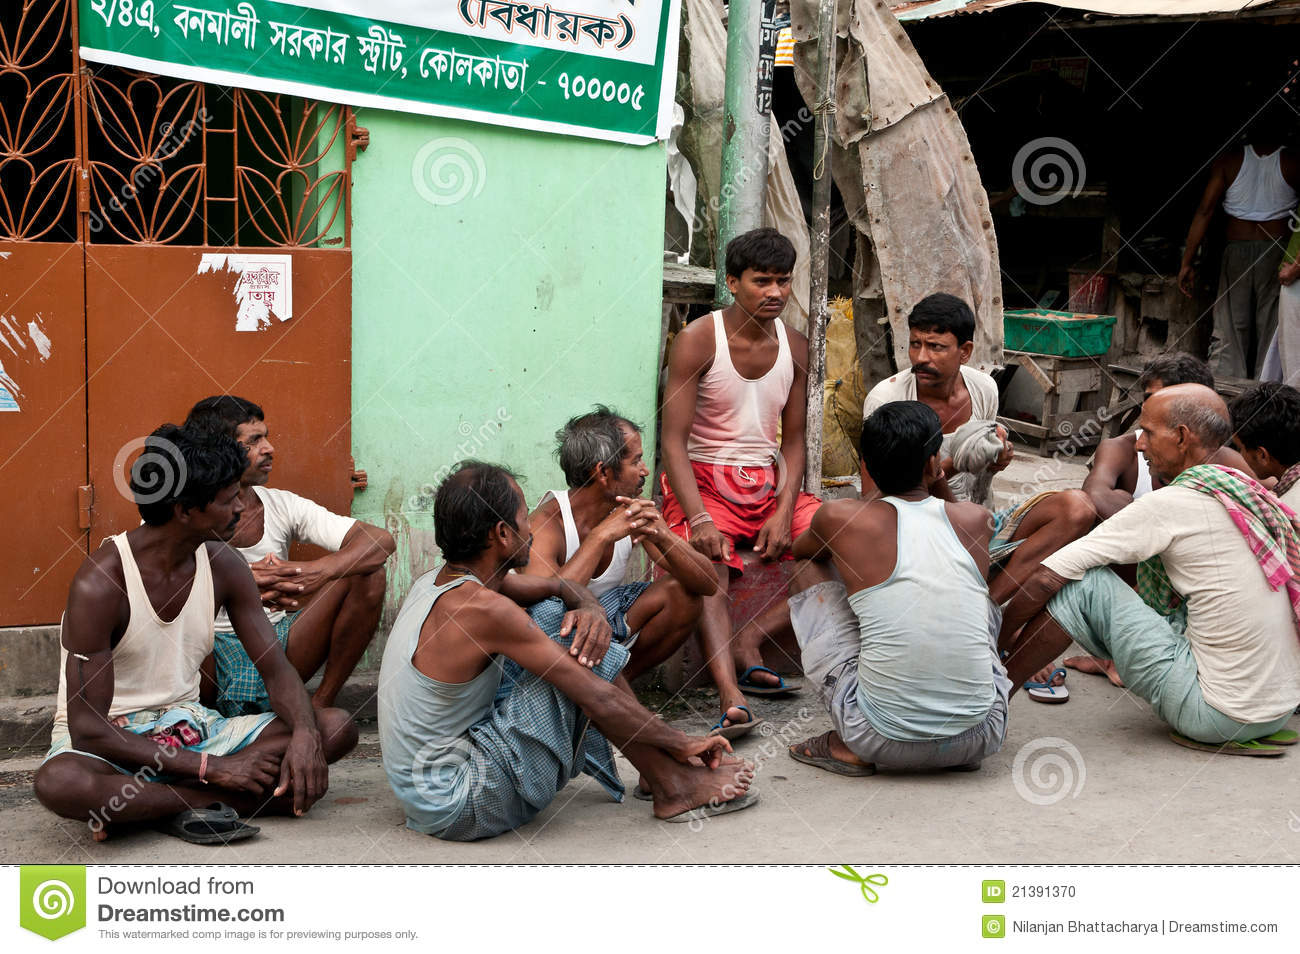 unemployment india The main causes of unemployment in india are a rapidly growing population and limited land this country had a population of 121 billion people by the end of 2011 and is expected to be the most populous country by 2025, overtaking china, which had a population of 13 billion people as of july of .